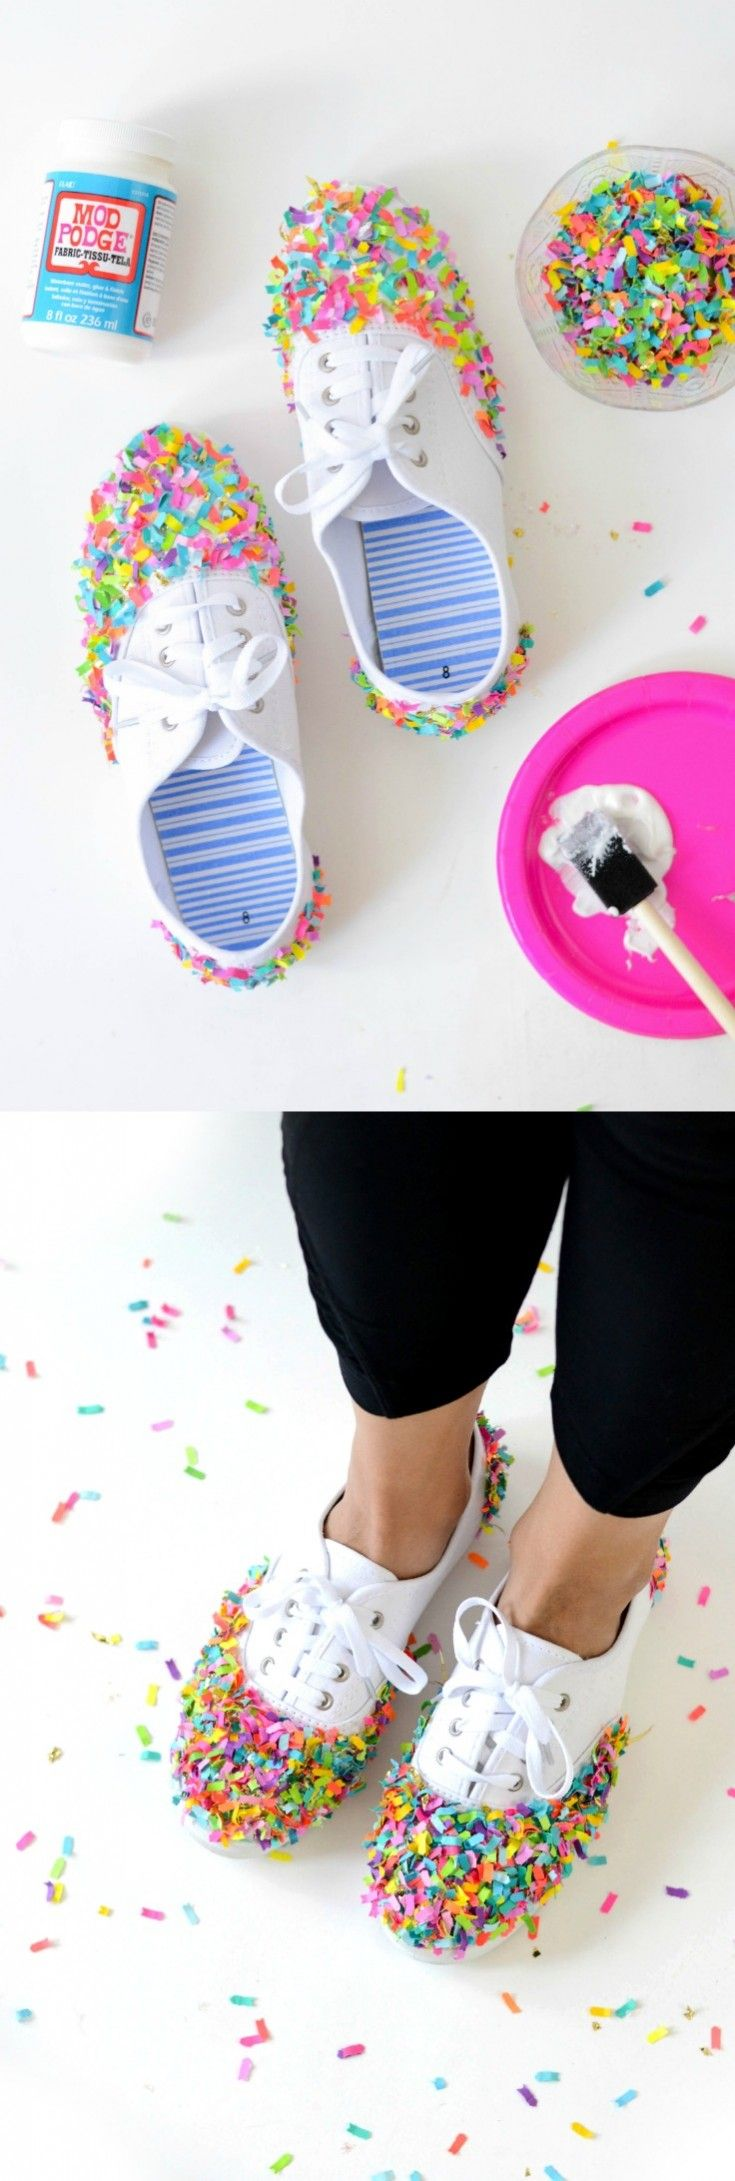 434 best diy fashion images on pinterest | pom poms, shoes and crafts